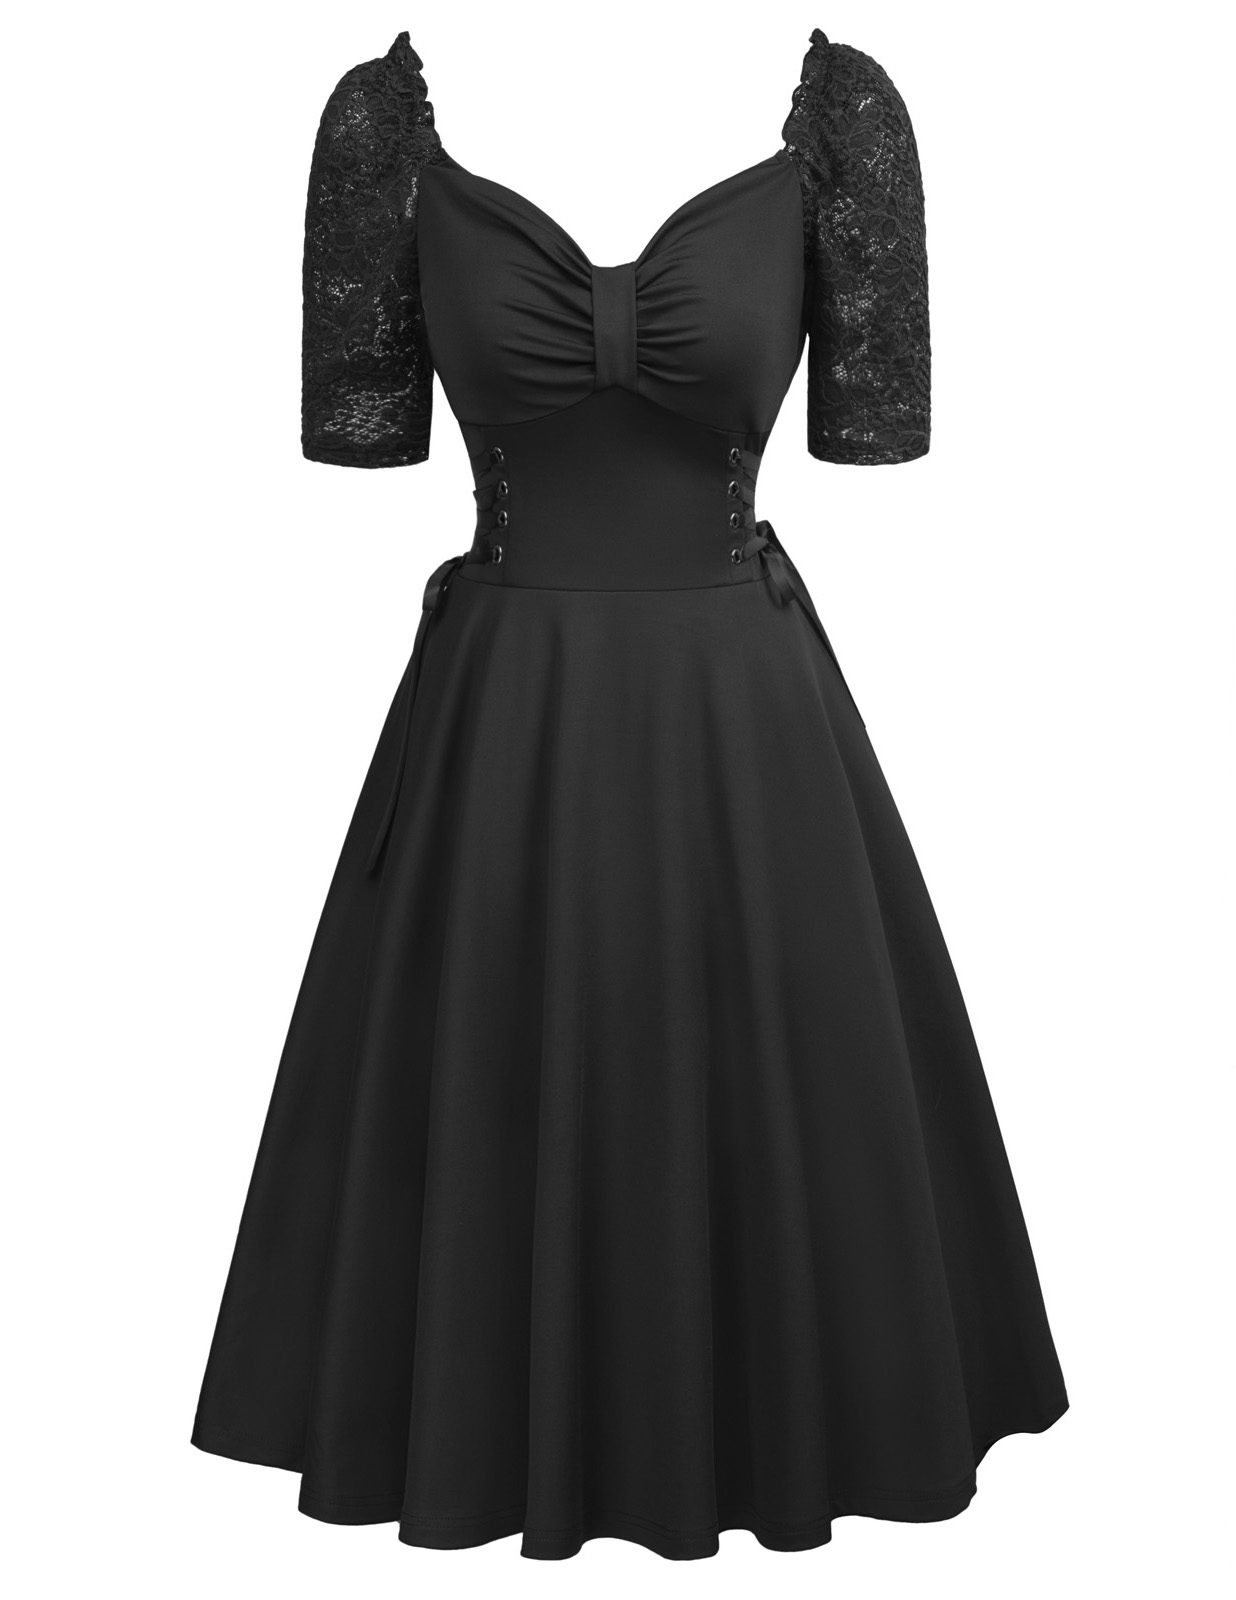 stock black red Retro Vintage goth dress elegant Women half Sleeve victoria beckham A-Line laxury evening wedding Party Dress